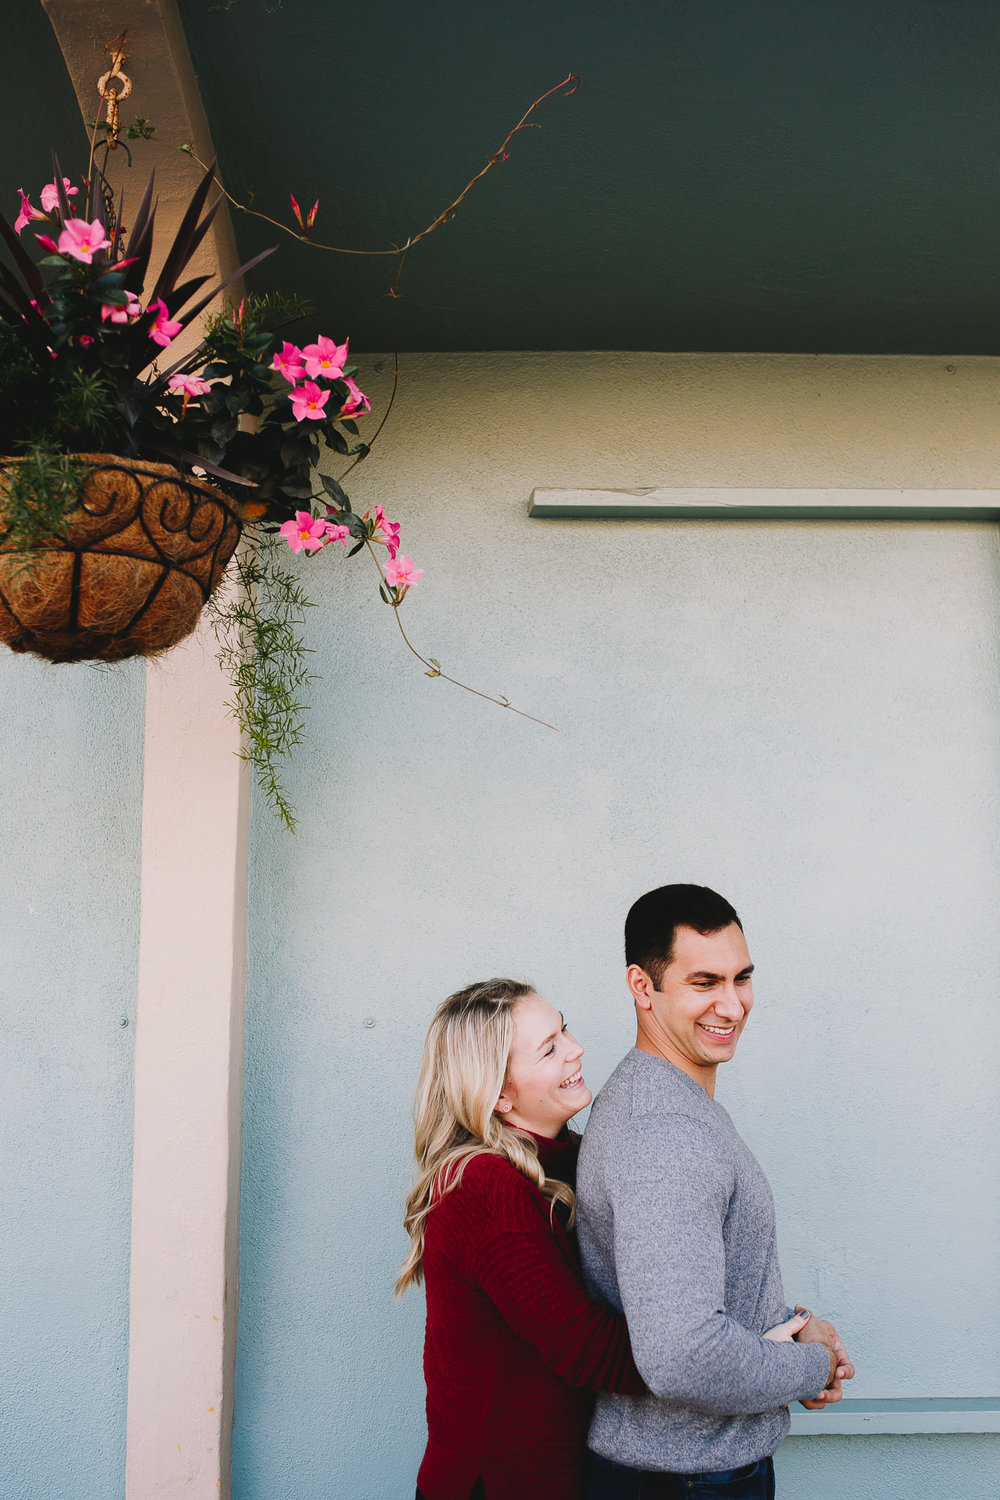 Archer Inspired Photography Capitola Beach Santa Cruz Wedding Engagement Lifestyle Session Photographer-40.jpg